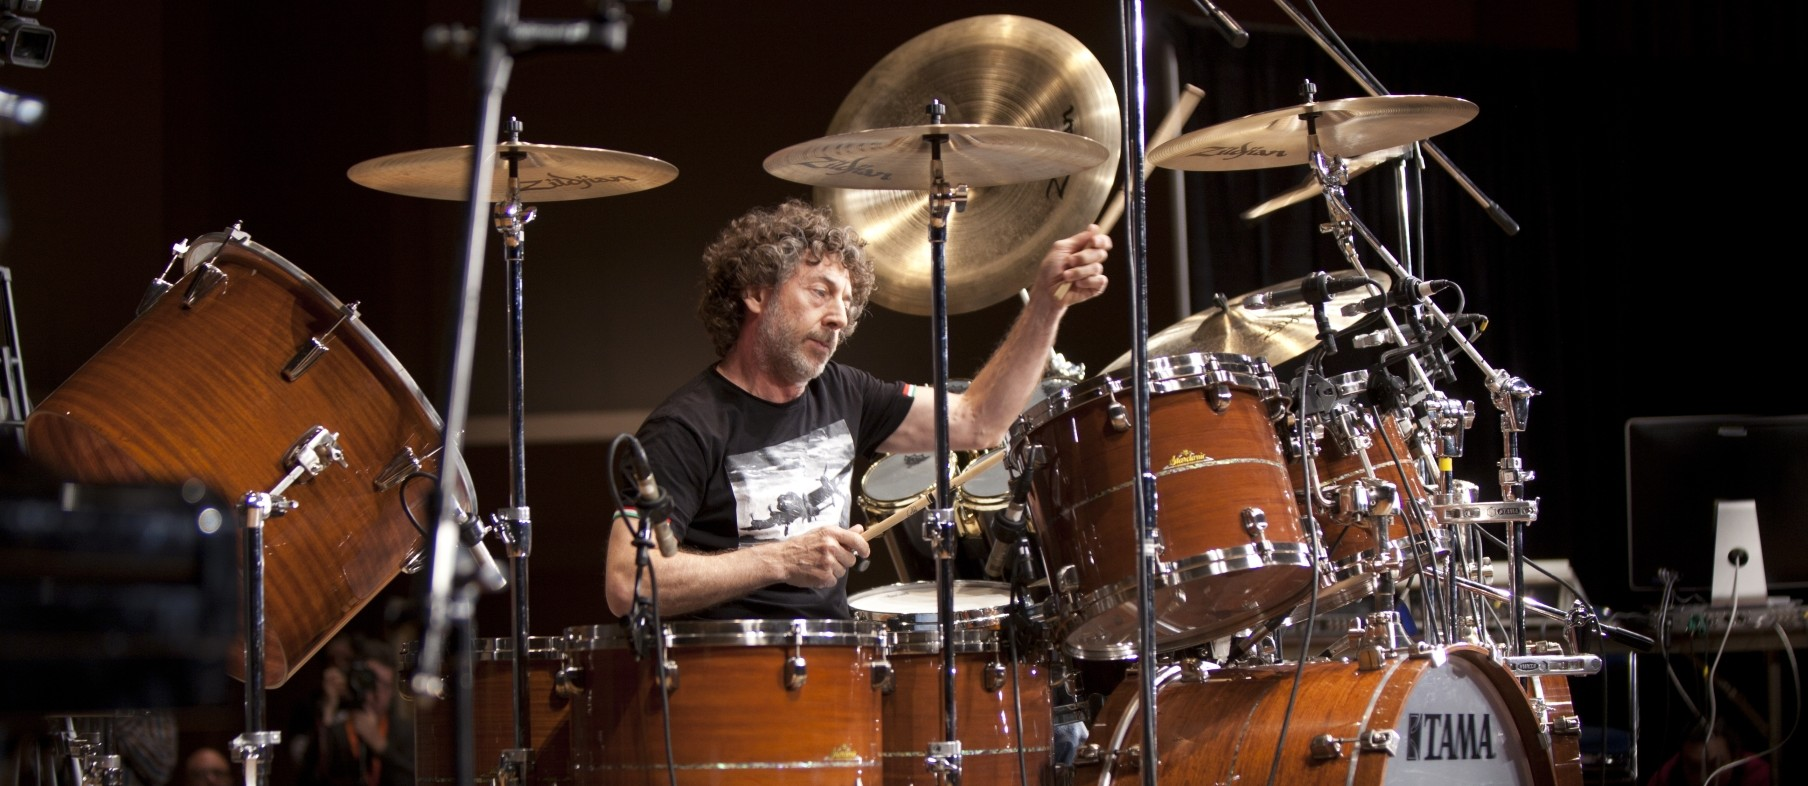 Simon Phillips 101